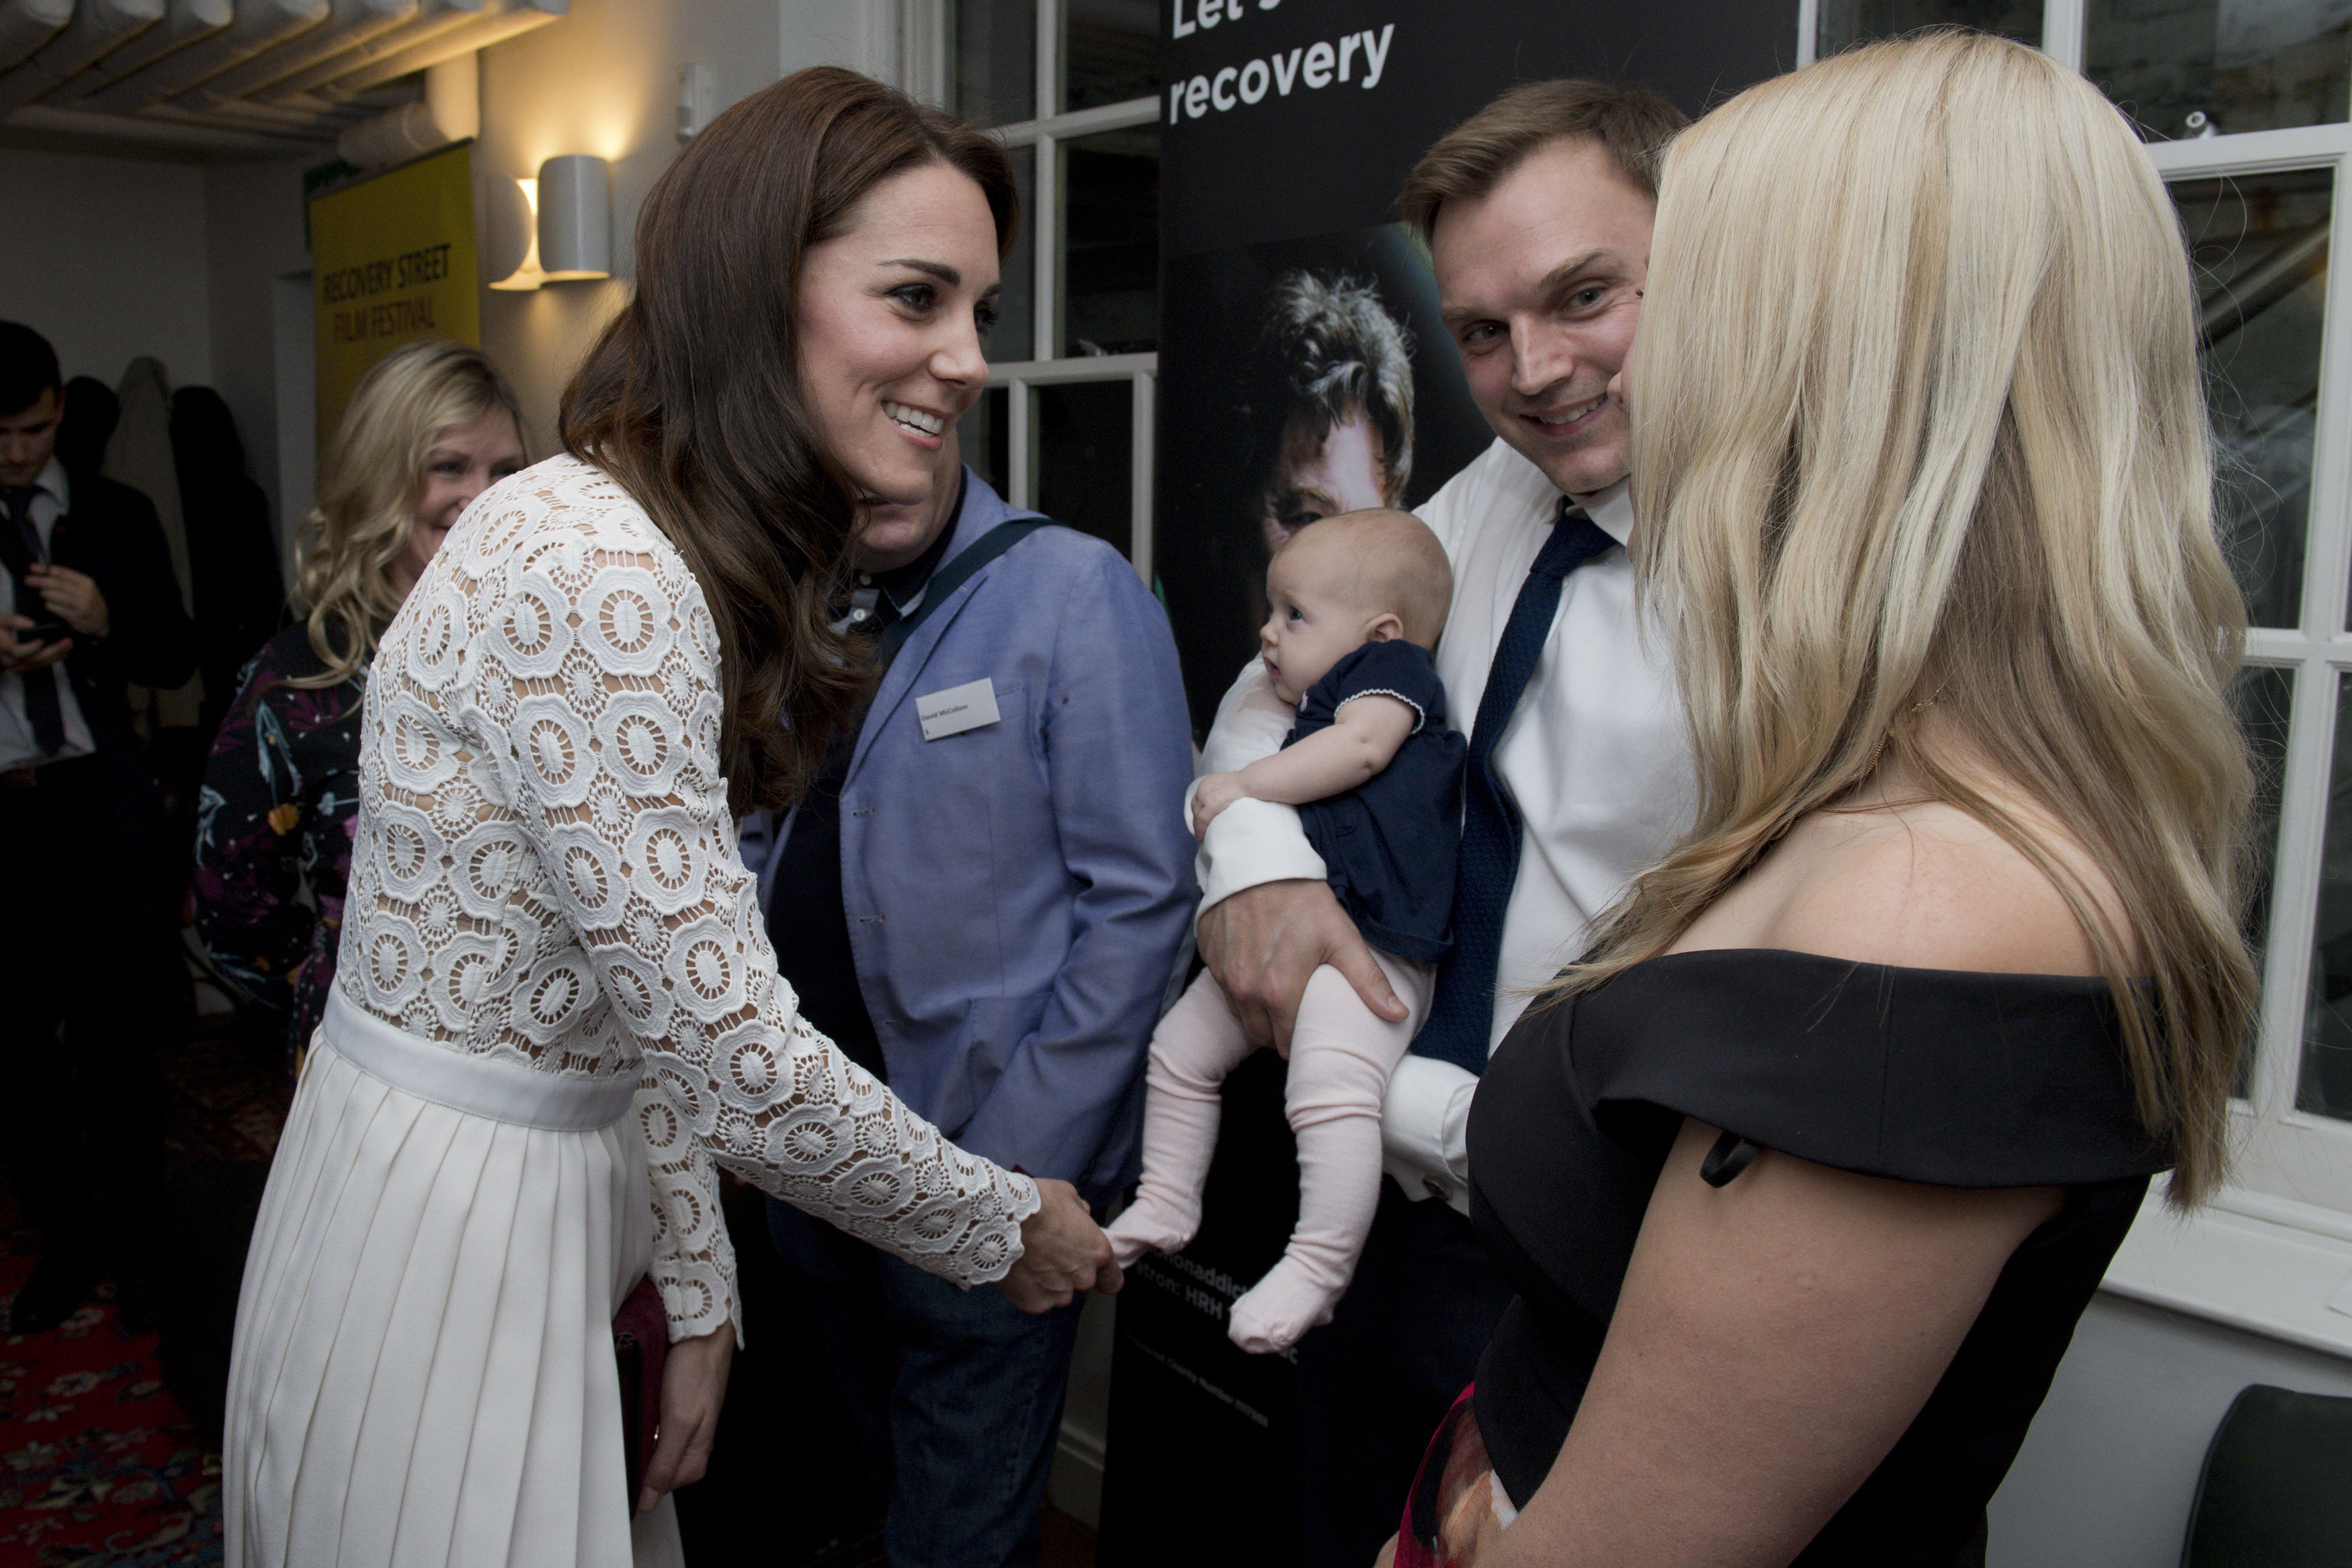 The Duchess of Cambridge at the Recovery Street Film Festival